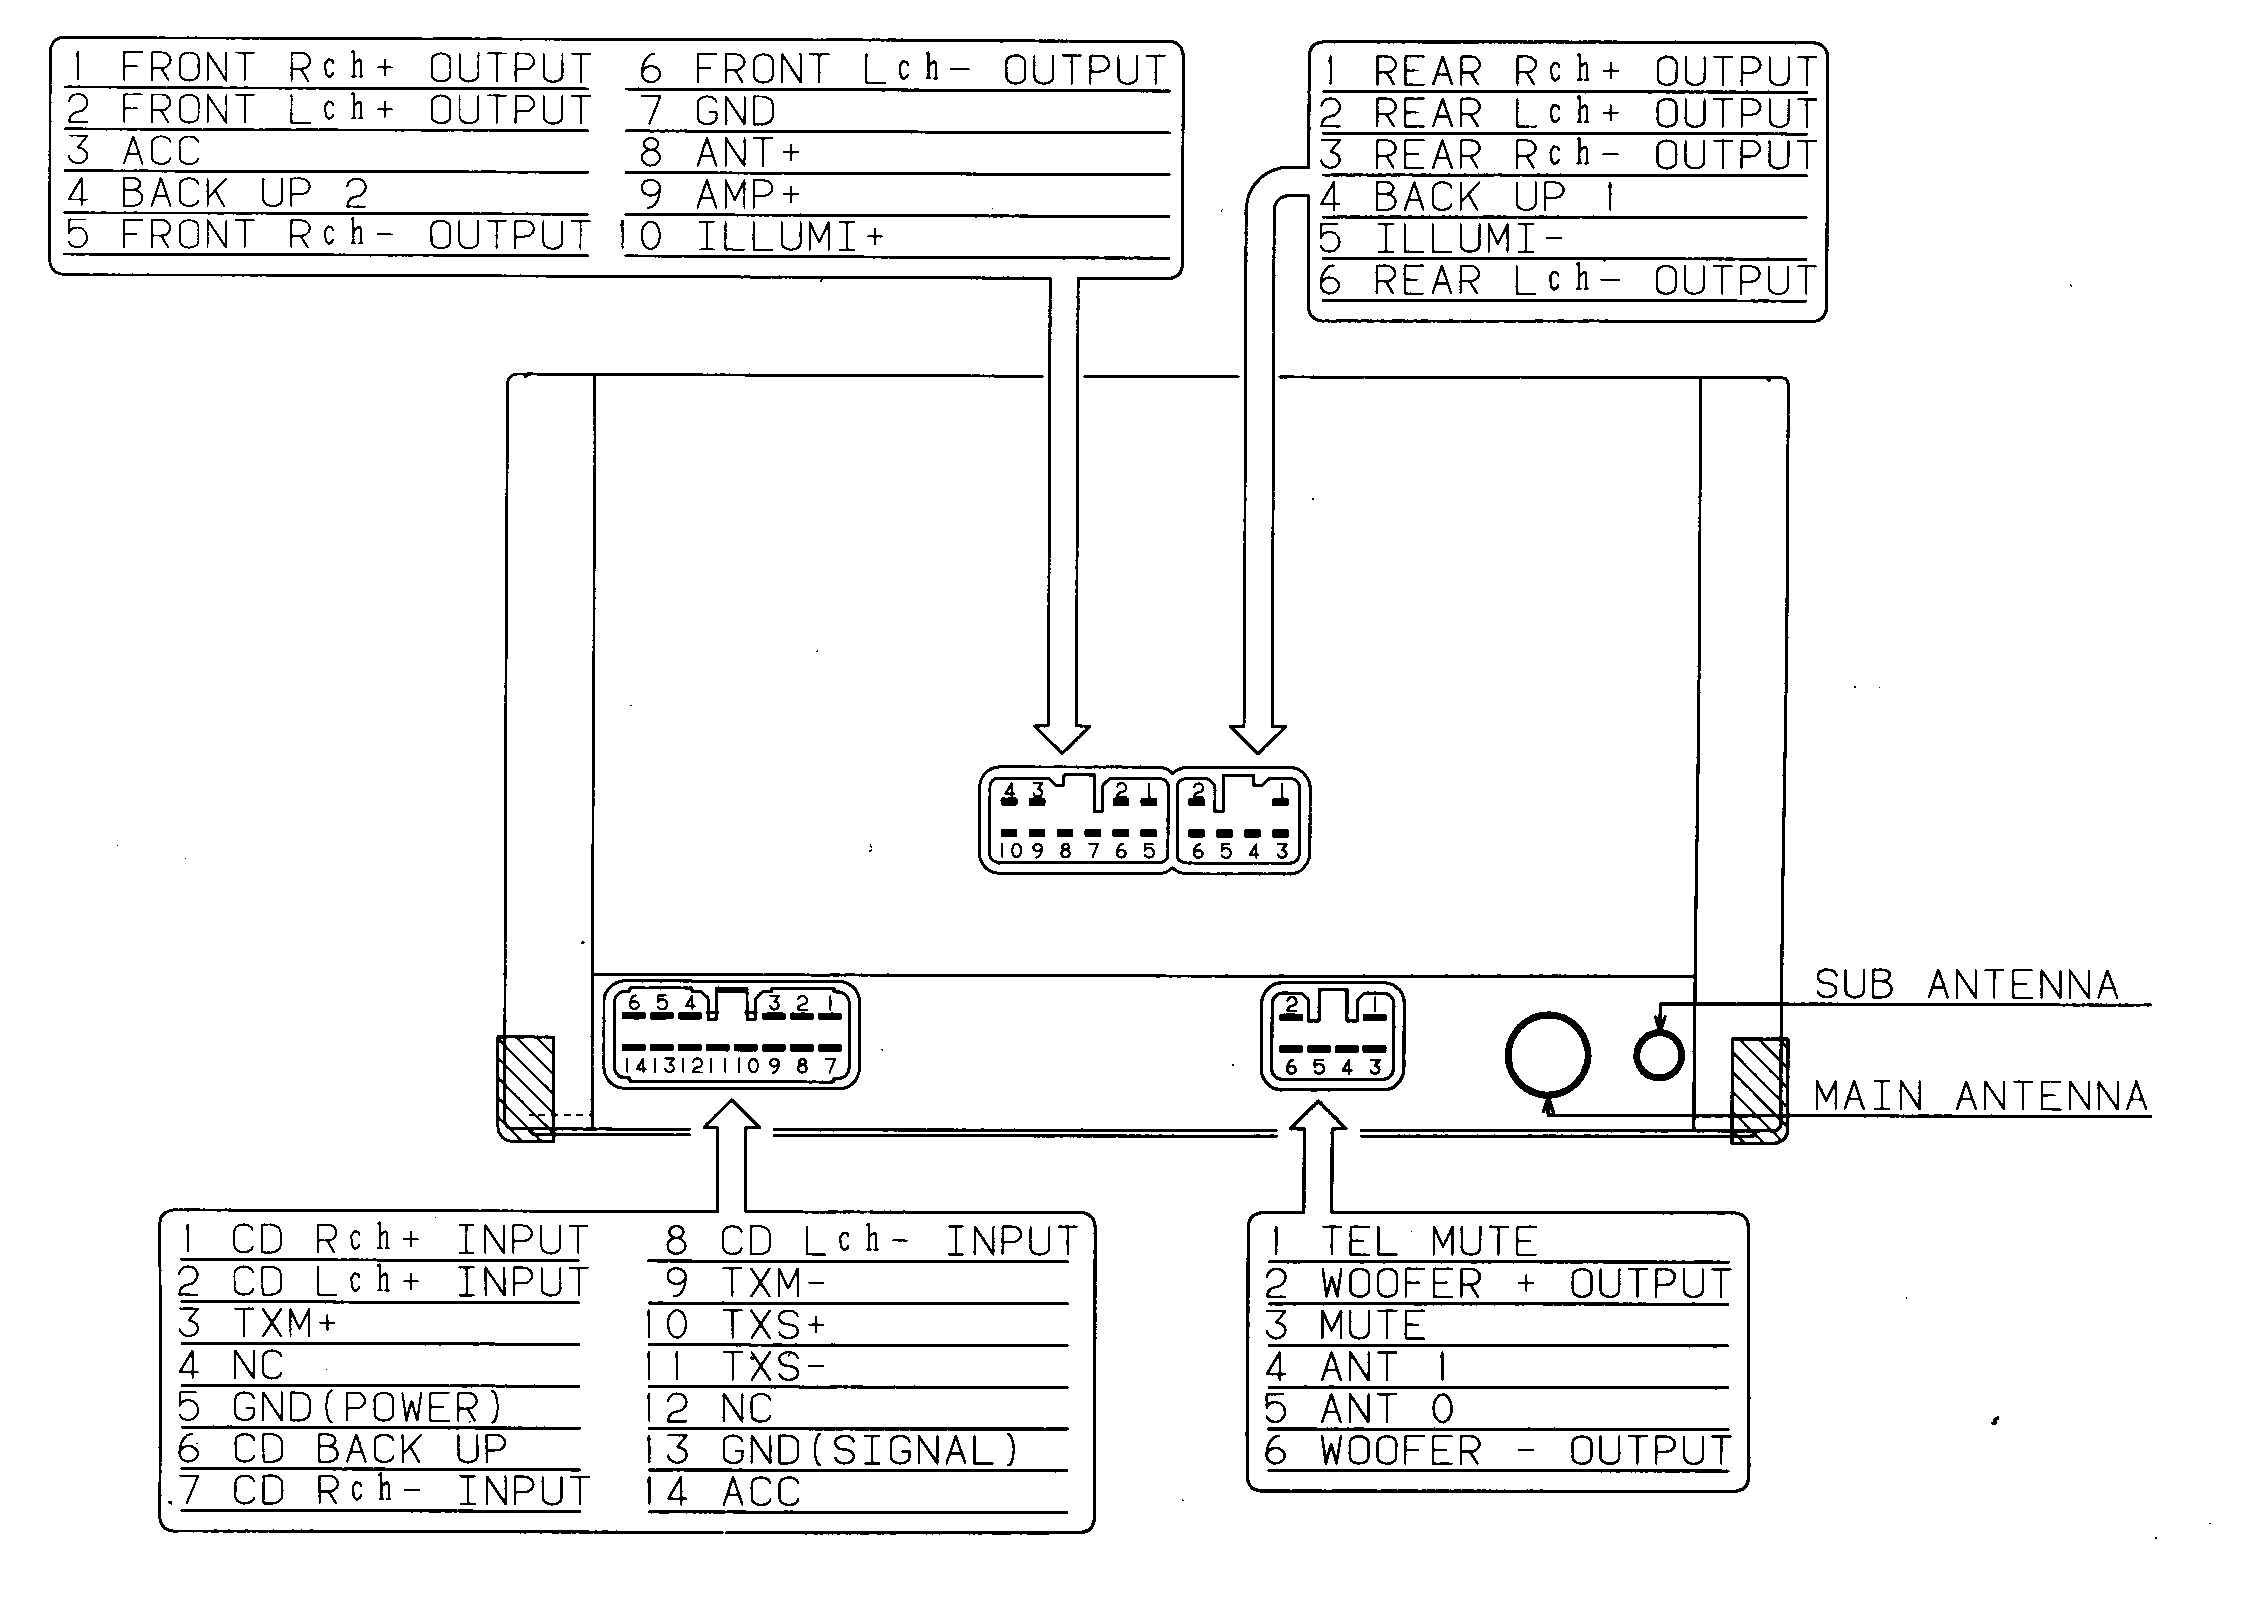 Lexus car stereo wiring diagram harness pinout connector wire lexus rx330 radio wiring diagram lexus rx330 parts diagram 2002 Lexus RX300 Interior at panicattacktreatment.co